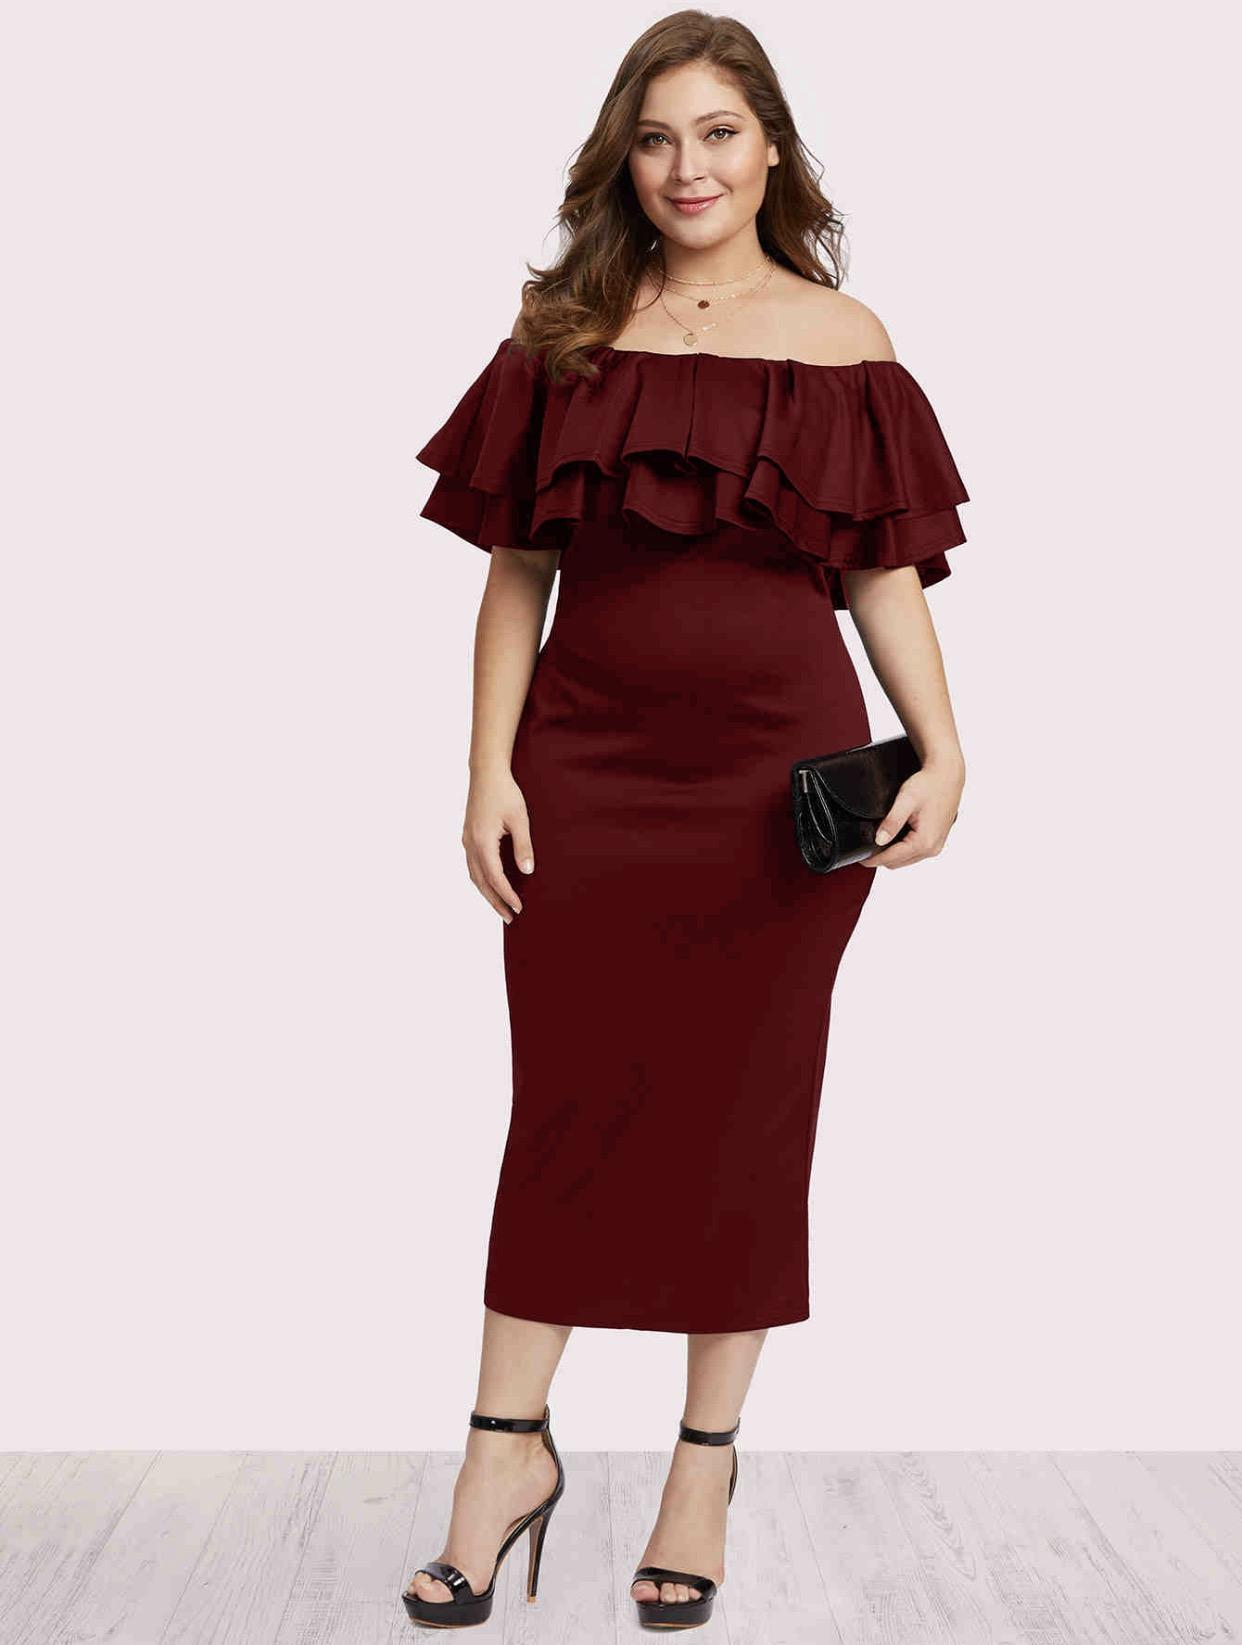 a5f702dc141e0 A1969 Off the Shoulder 2-layer Plus Size Dress L XL (XXL)